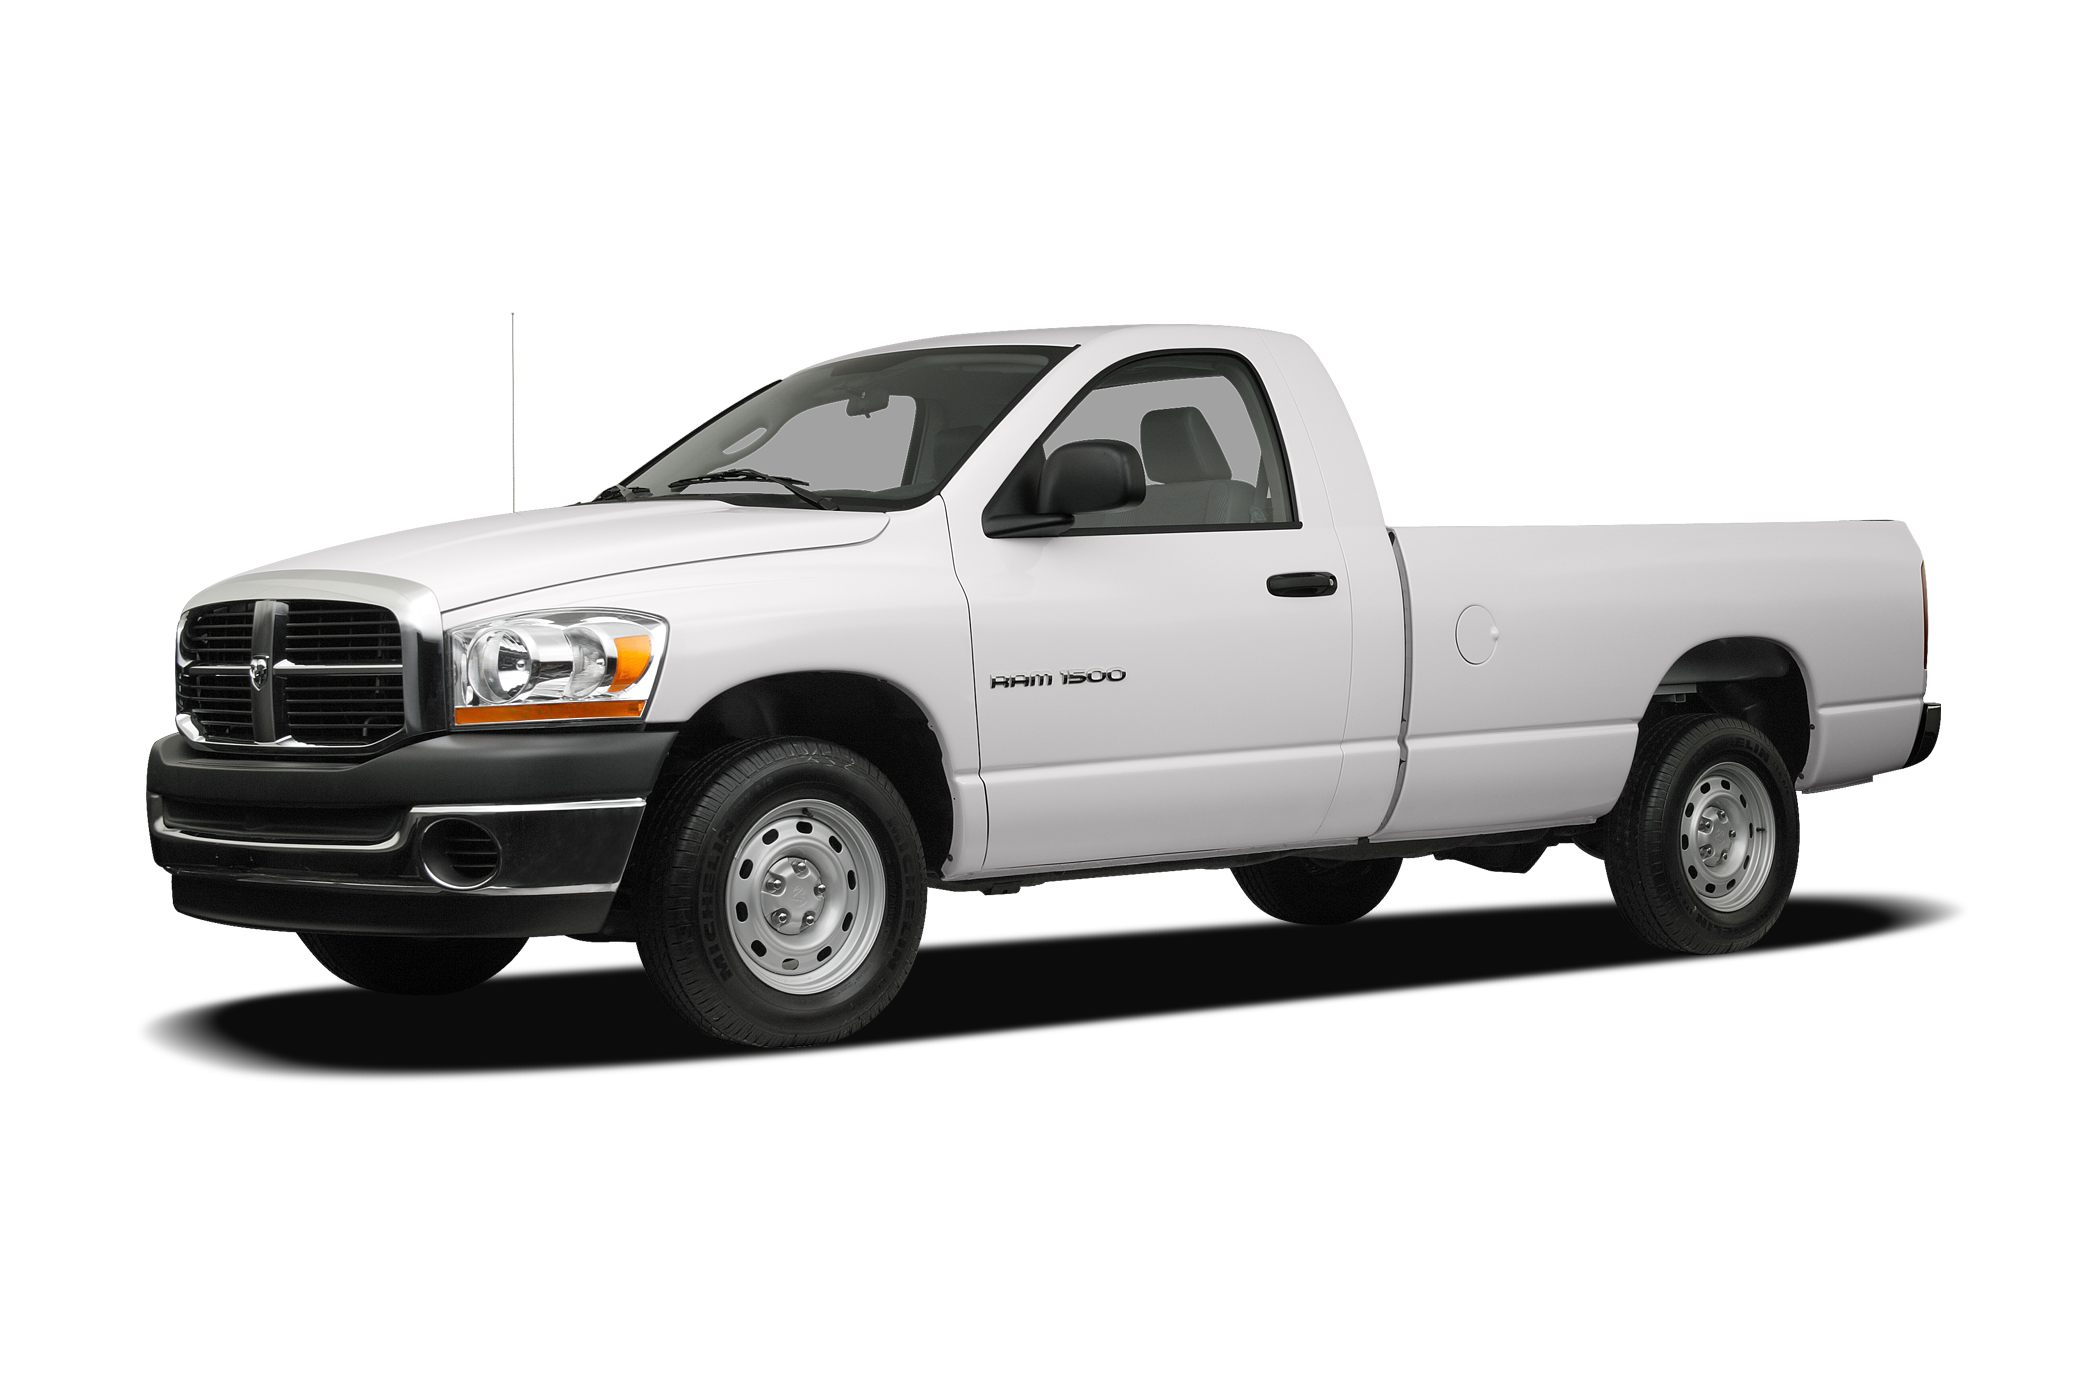 2008 Dodge Ram 1500 Specs And Prices Engine Belt Diagrams For 2011 5 7 Hemi